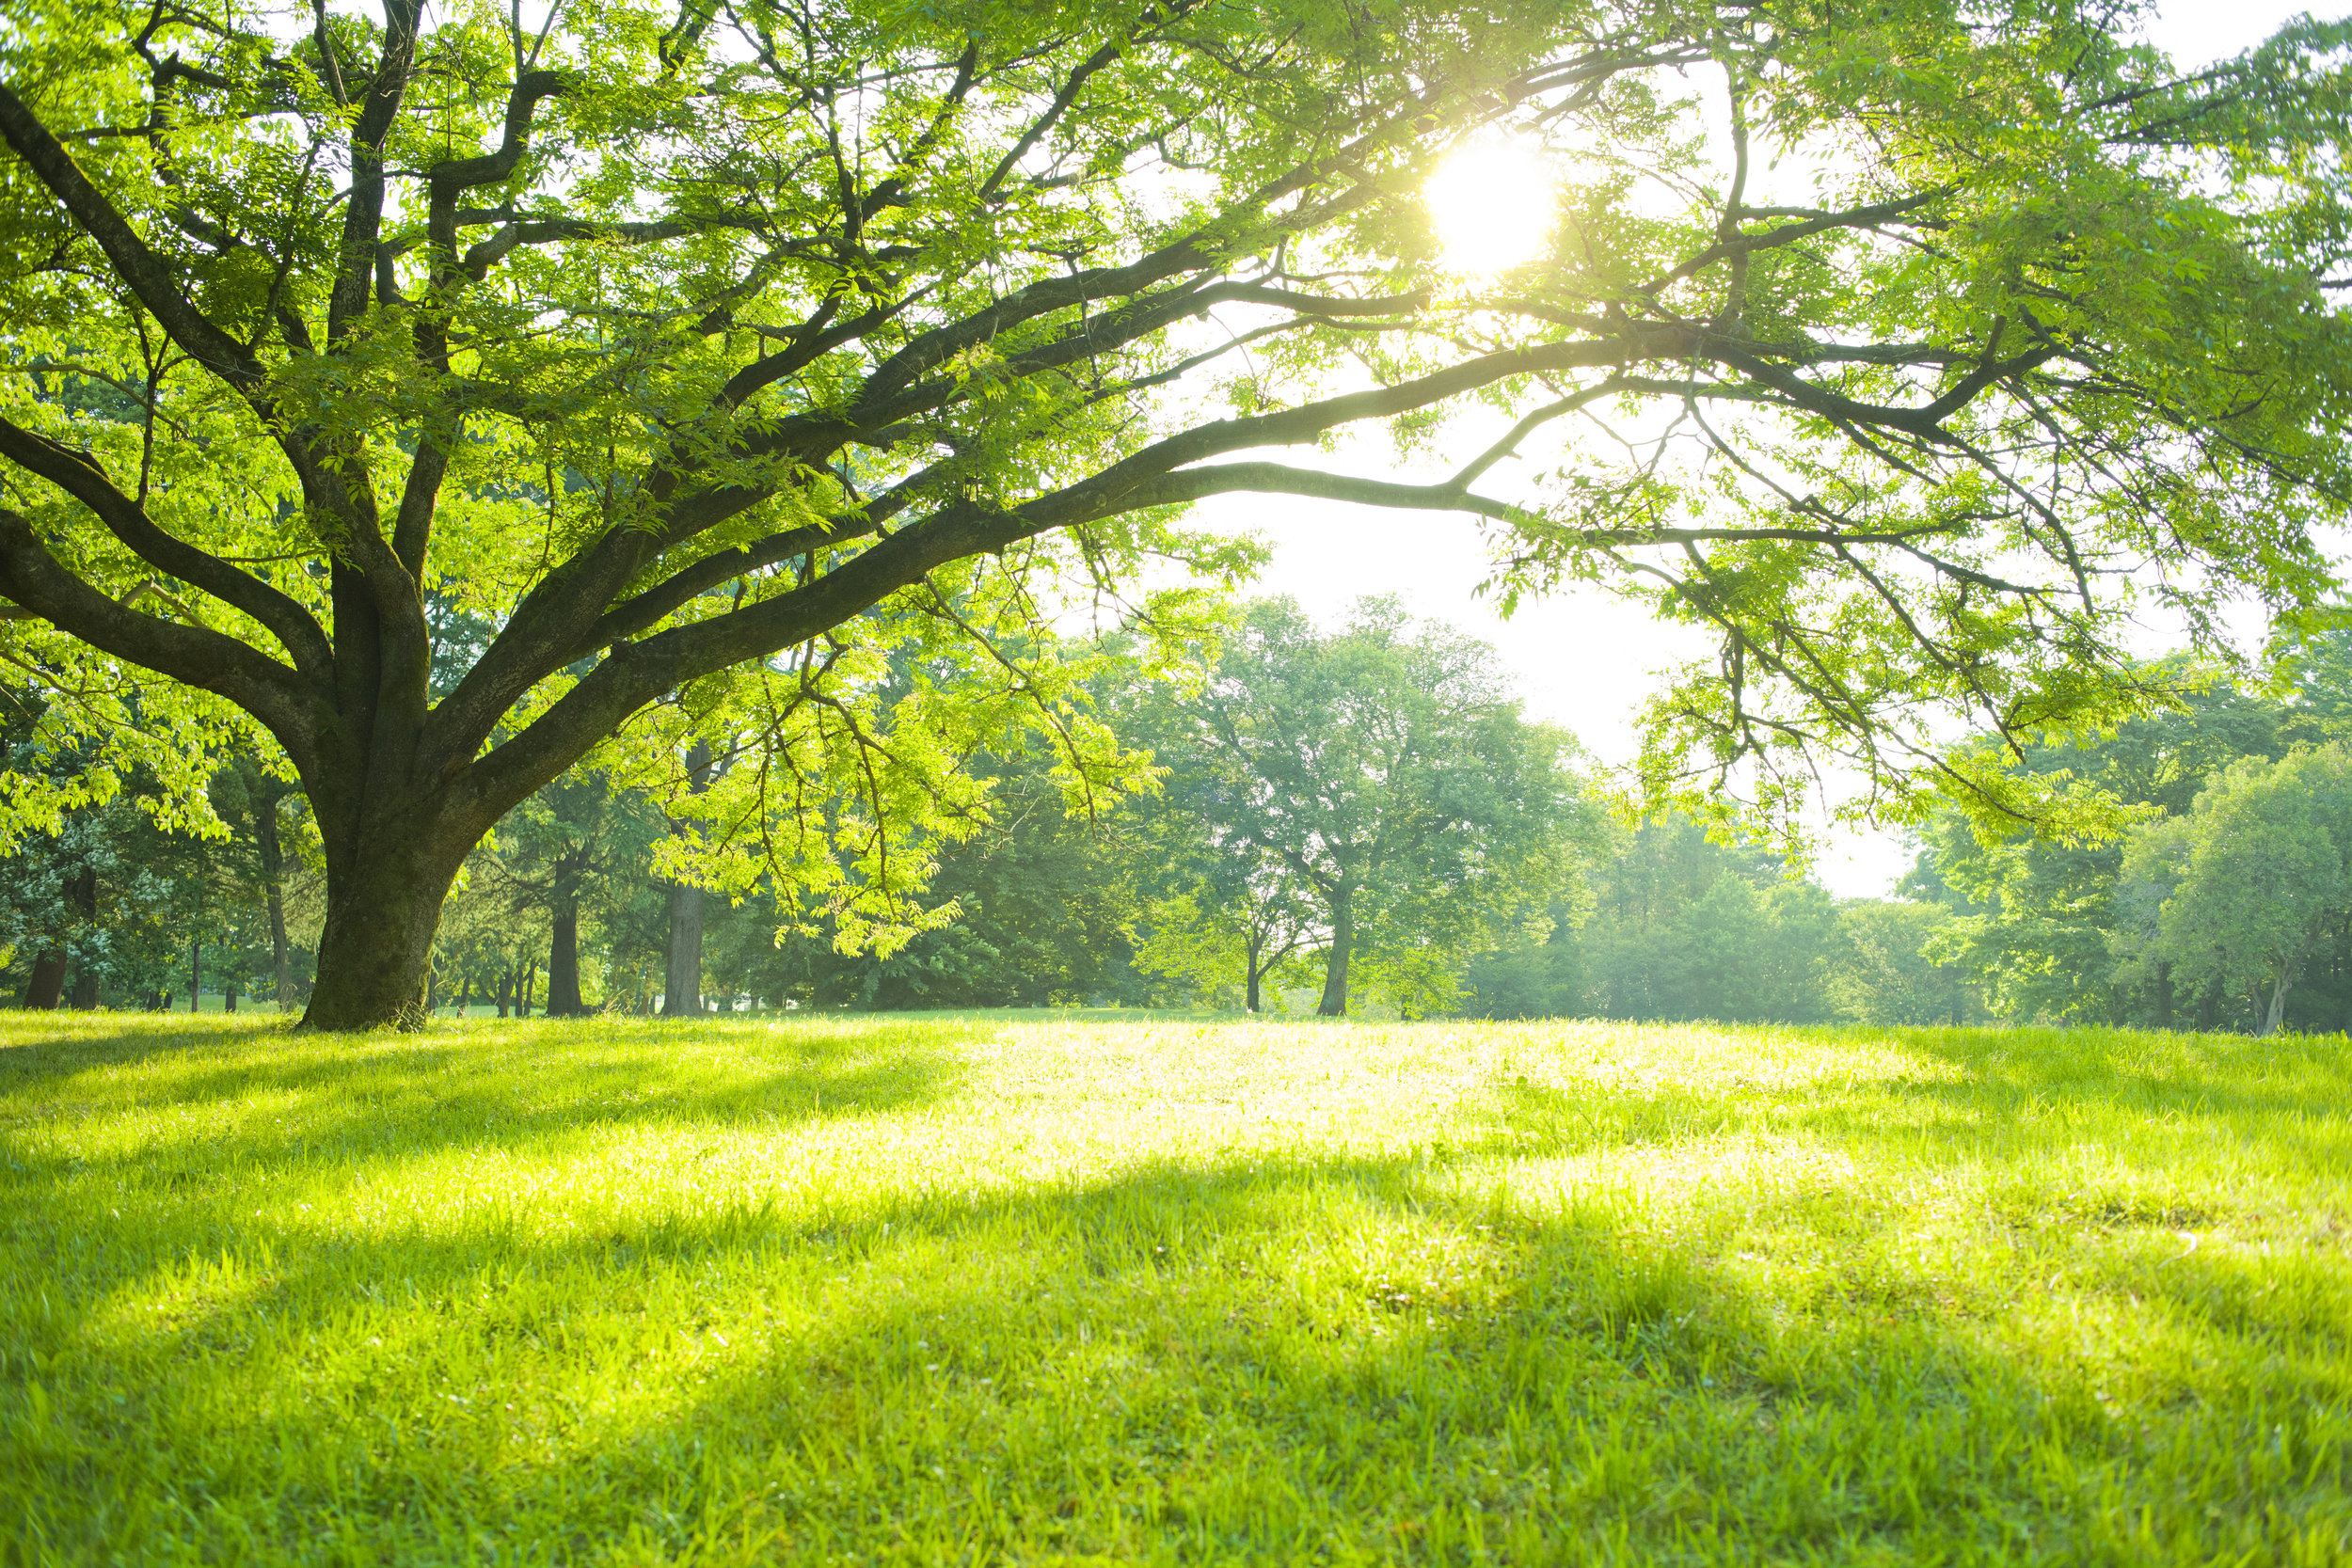 Qualities to Look for When Scouting Lawn Fertilizer Companies in Fishkill, NY